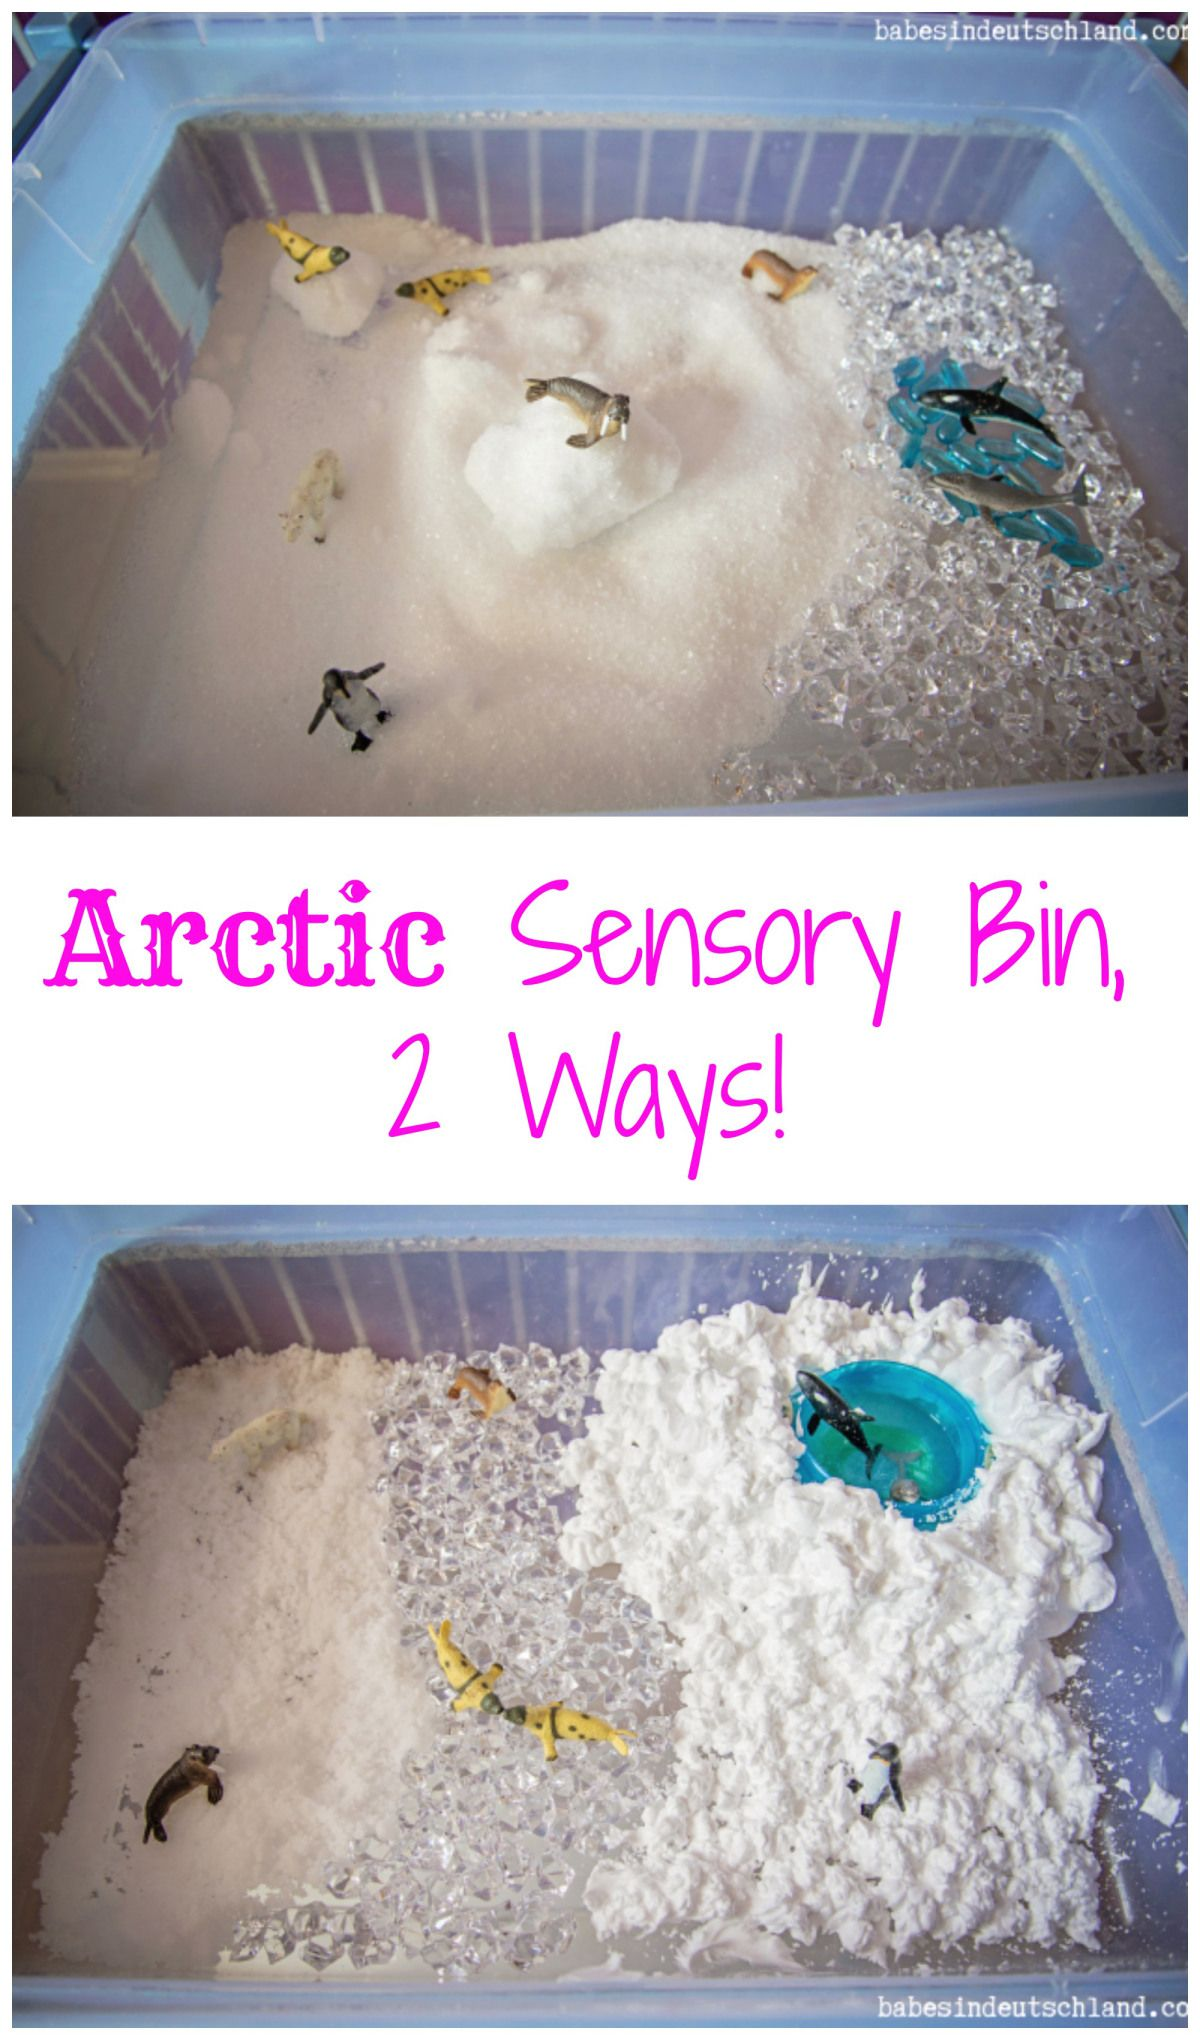 An arctic sensory bin done two ways the messy way and the